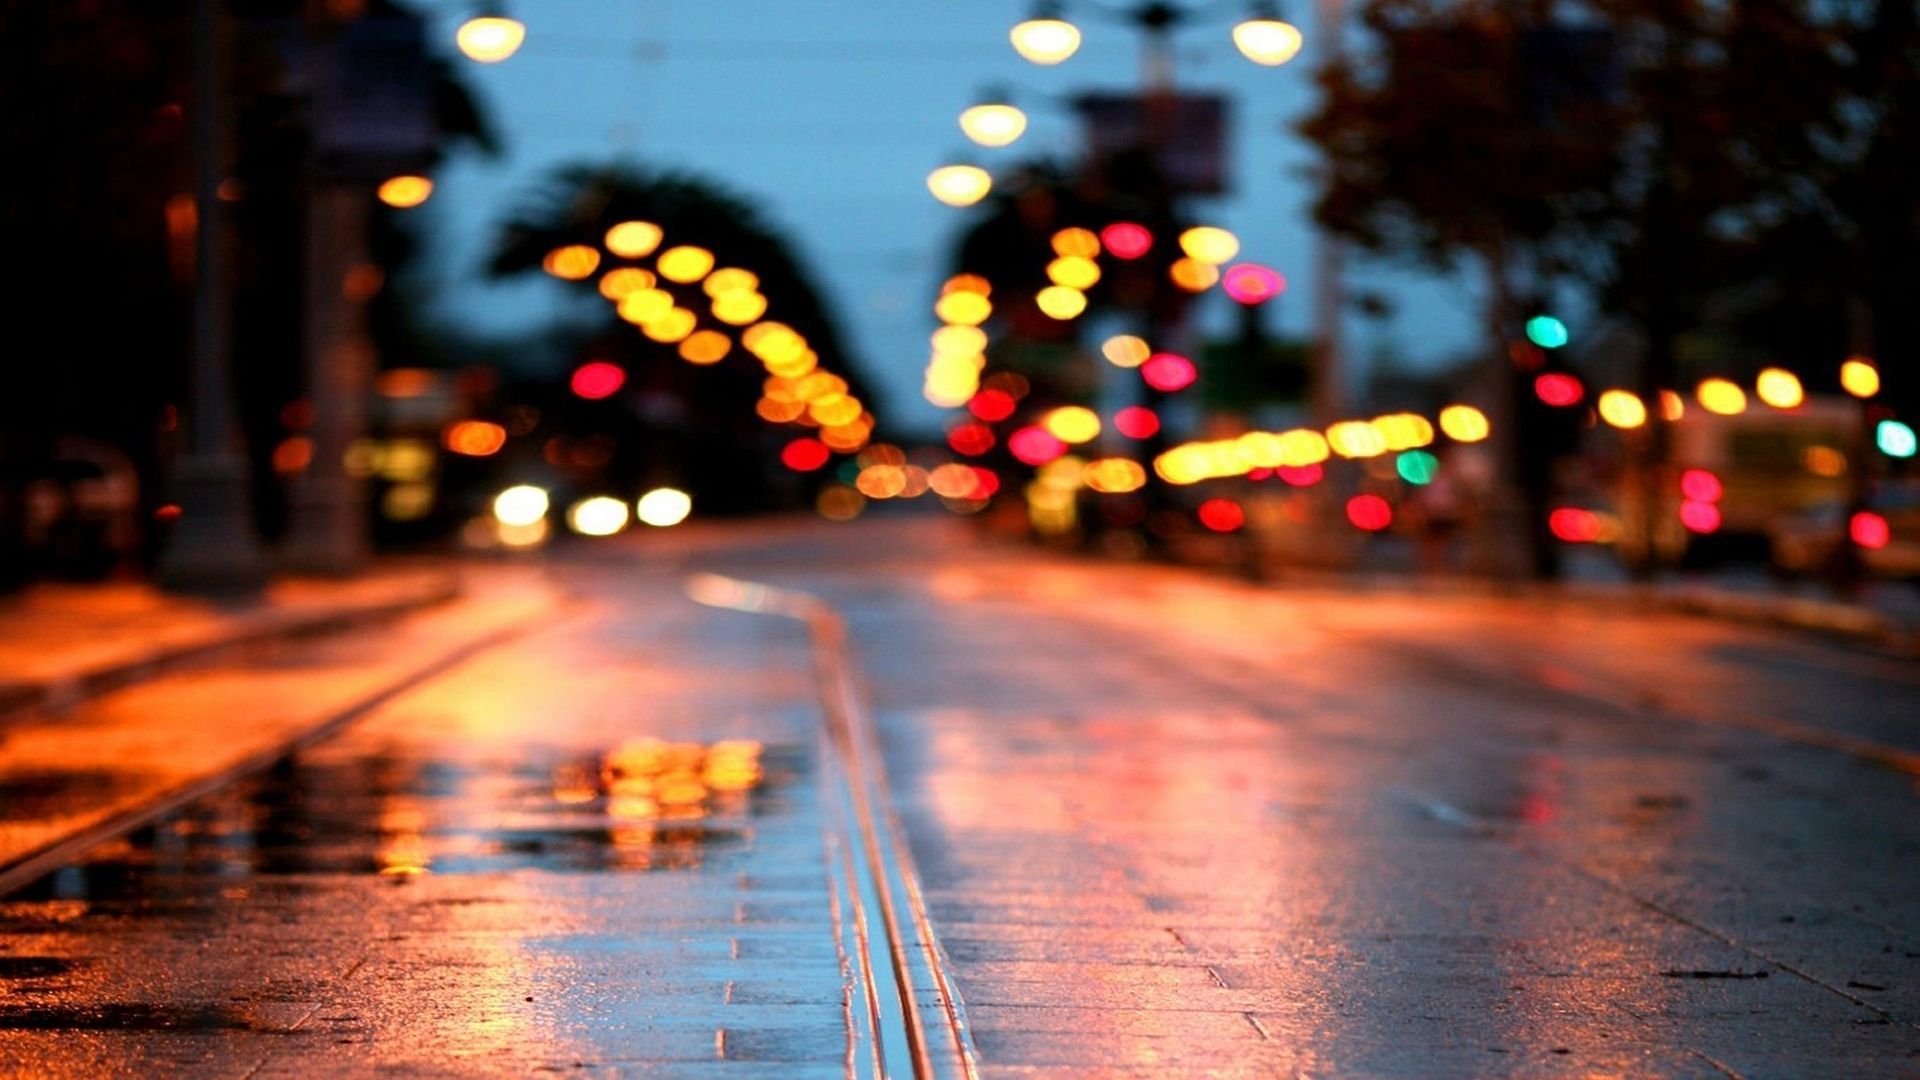 Night Street Wallpapers Top Free Night Street Backgrounds Wallpaperaccess